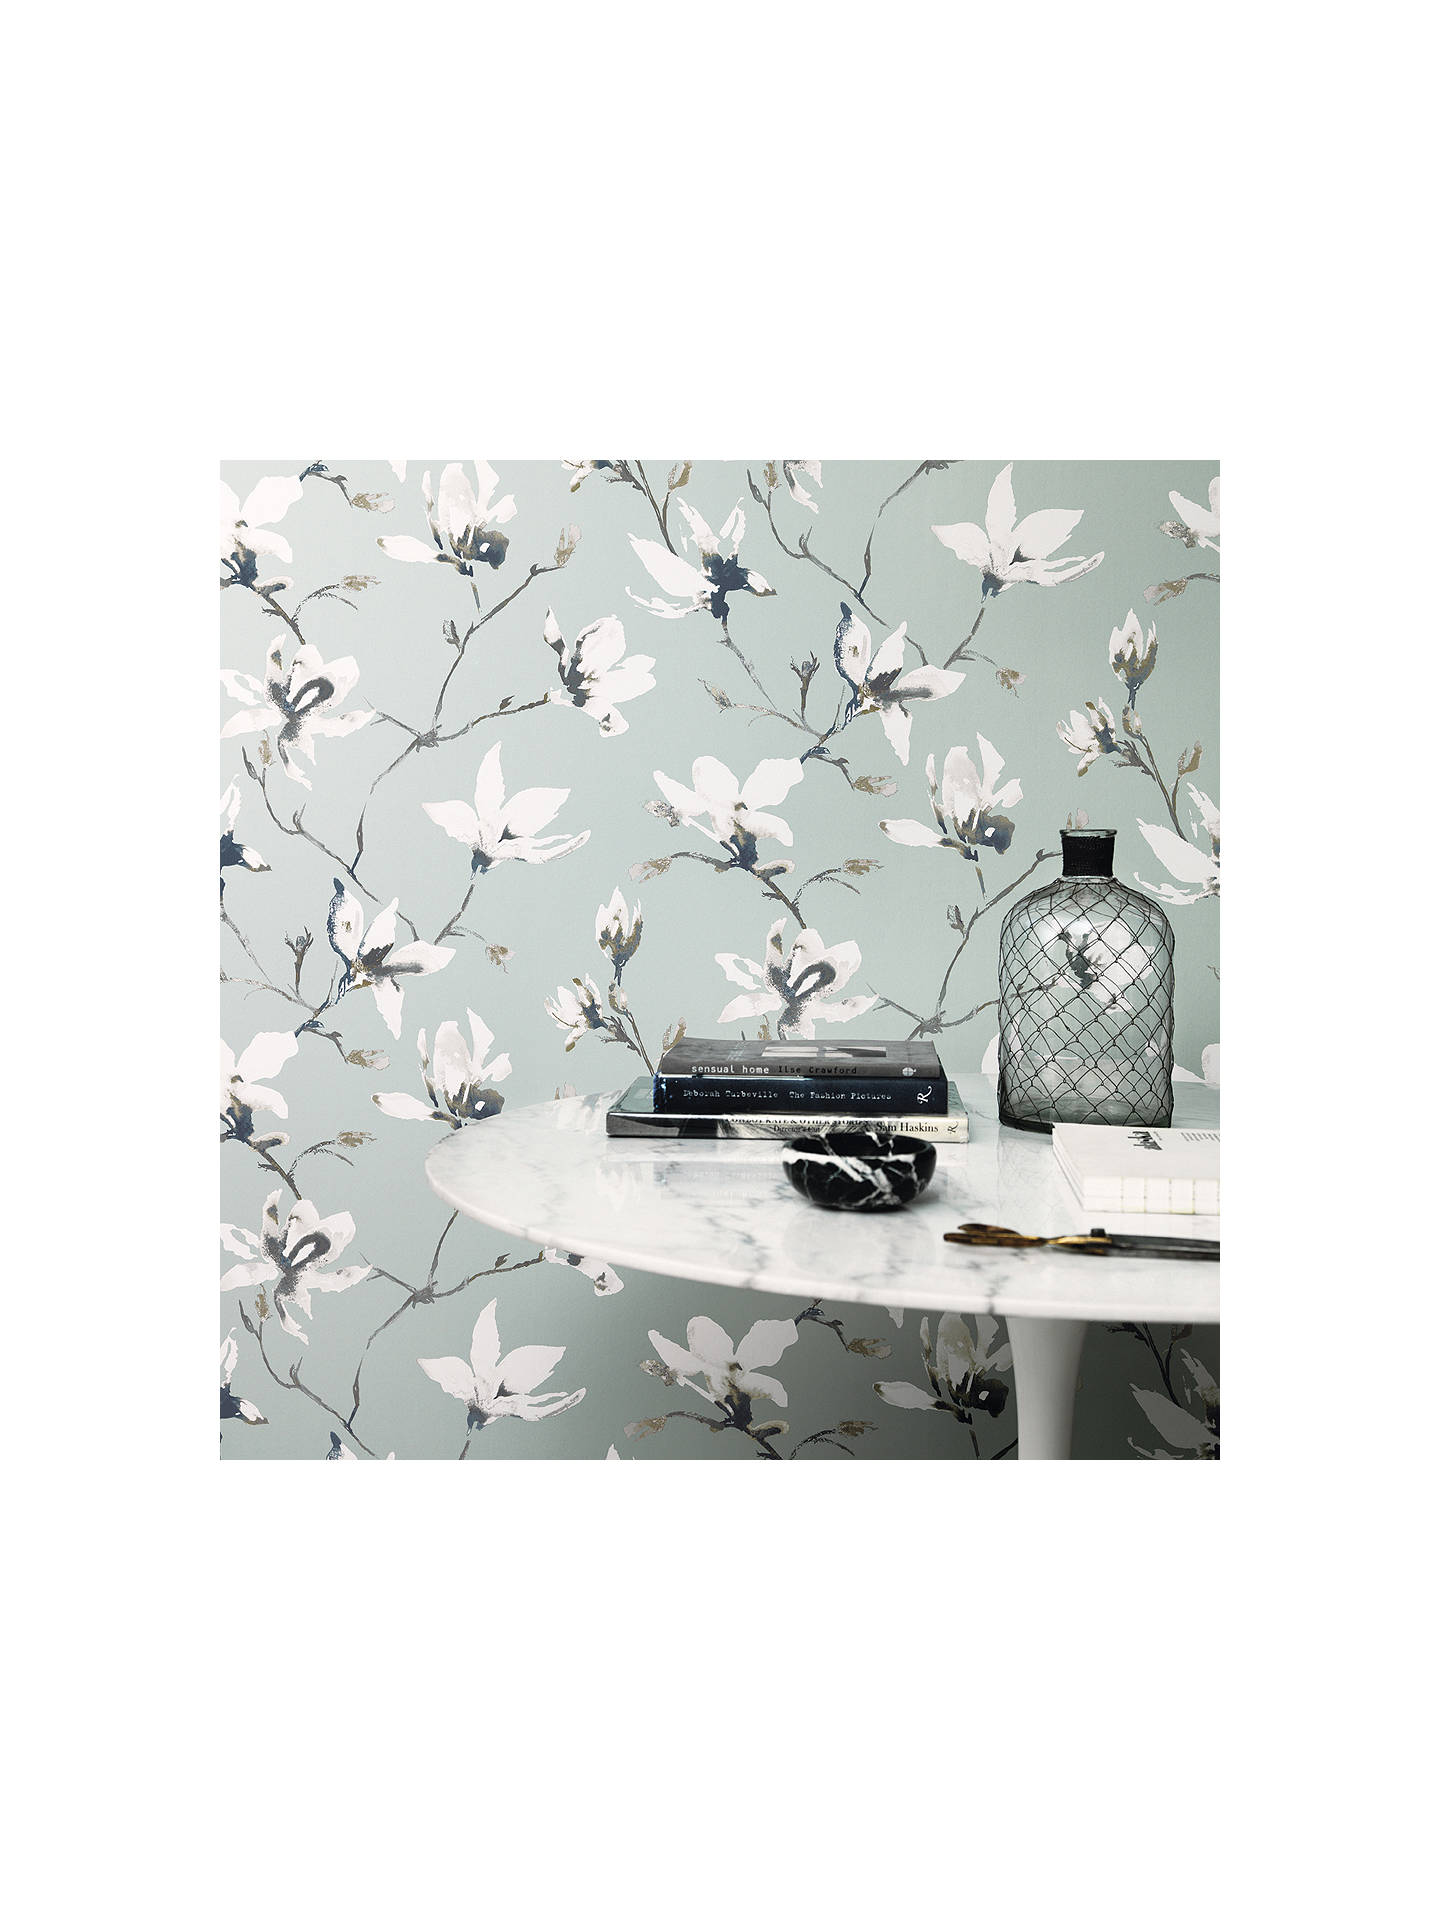 Buy Romo Saphira Paste the Wall Wallpaper, Lovat W405/03 Online at johnlewis.com